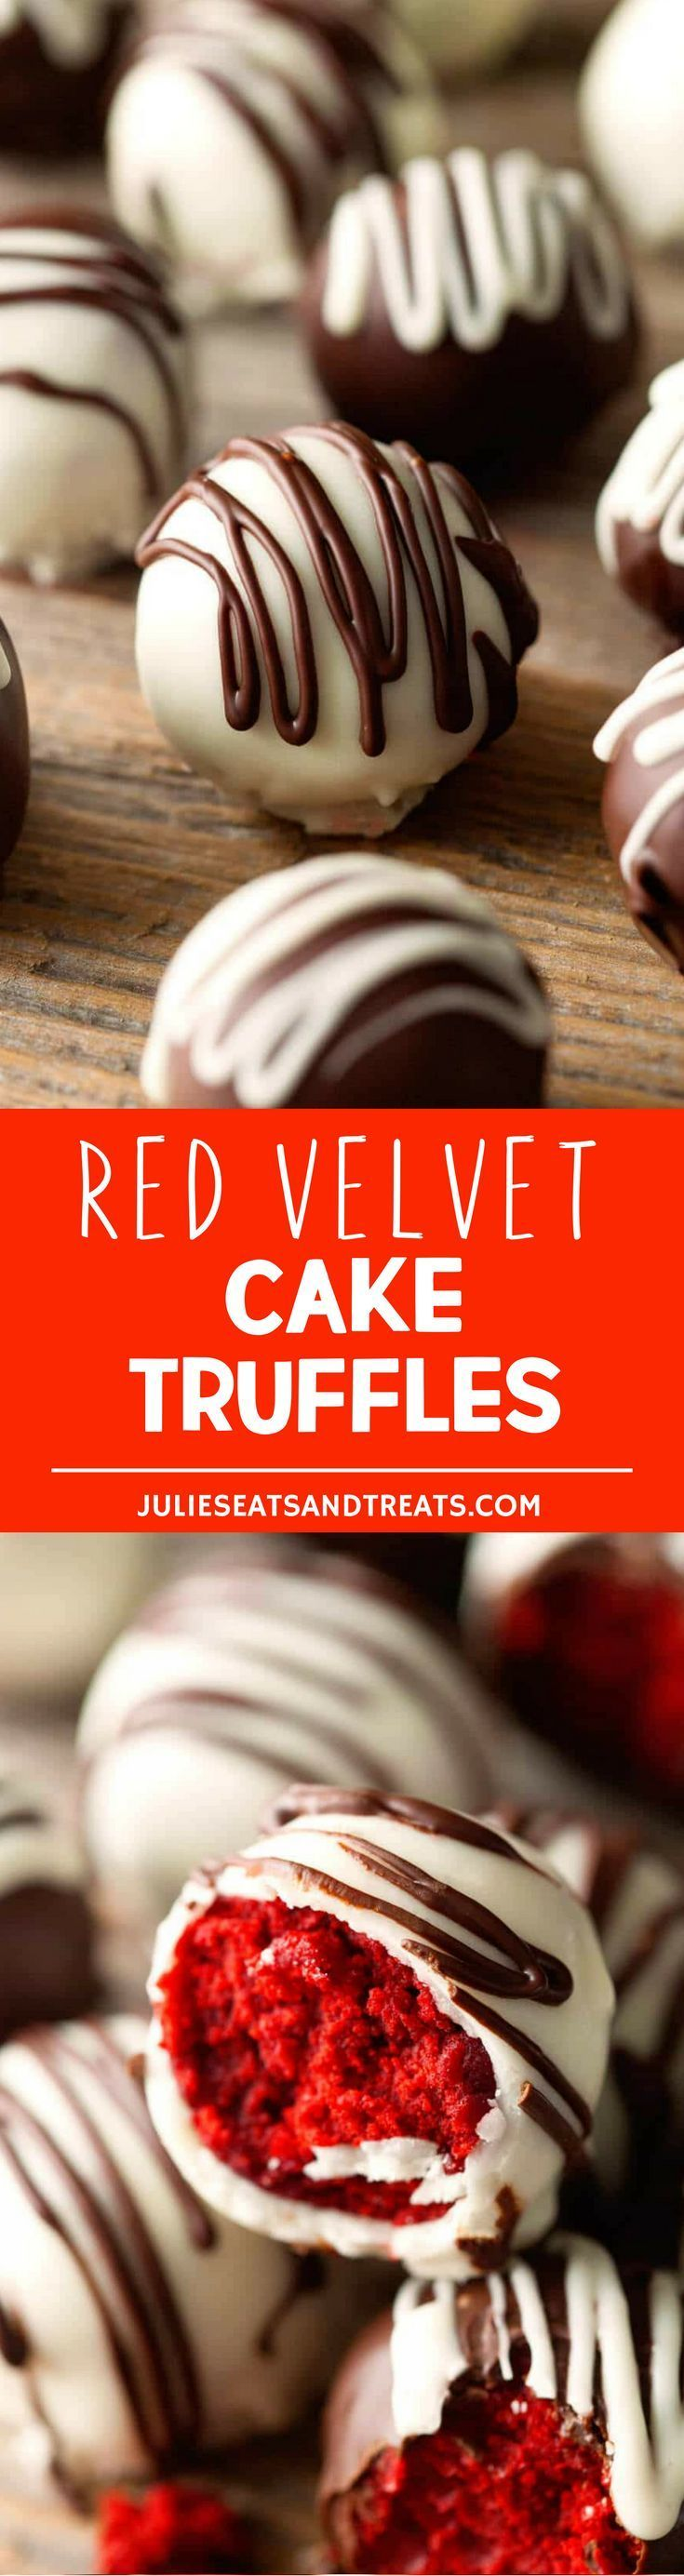 Red Velvet Cake Truffles are the ultimate Valentine's Day treat. Be prepared to fall head over heels for these sweet bites! More homemade and made from scratch recipes from @julieseats